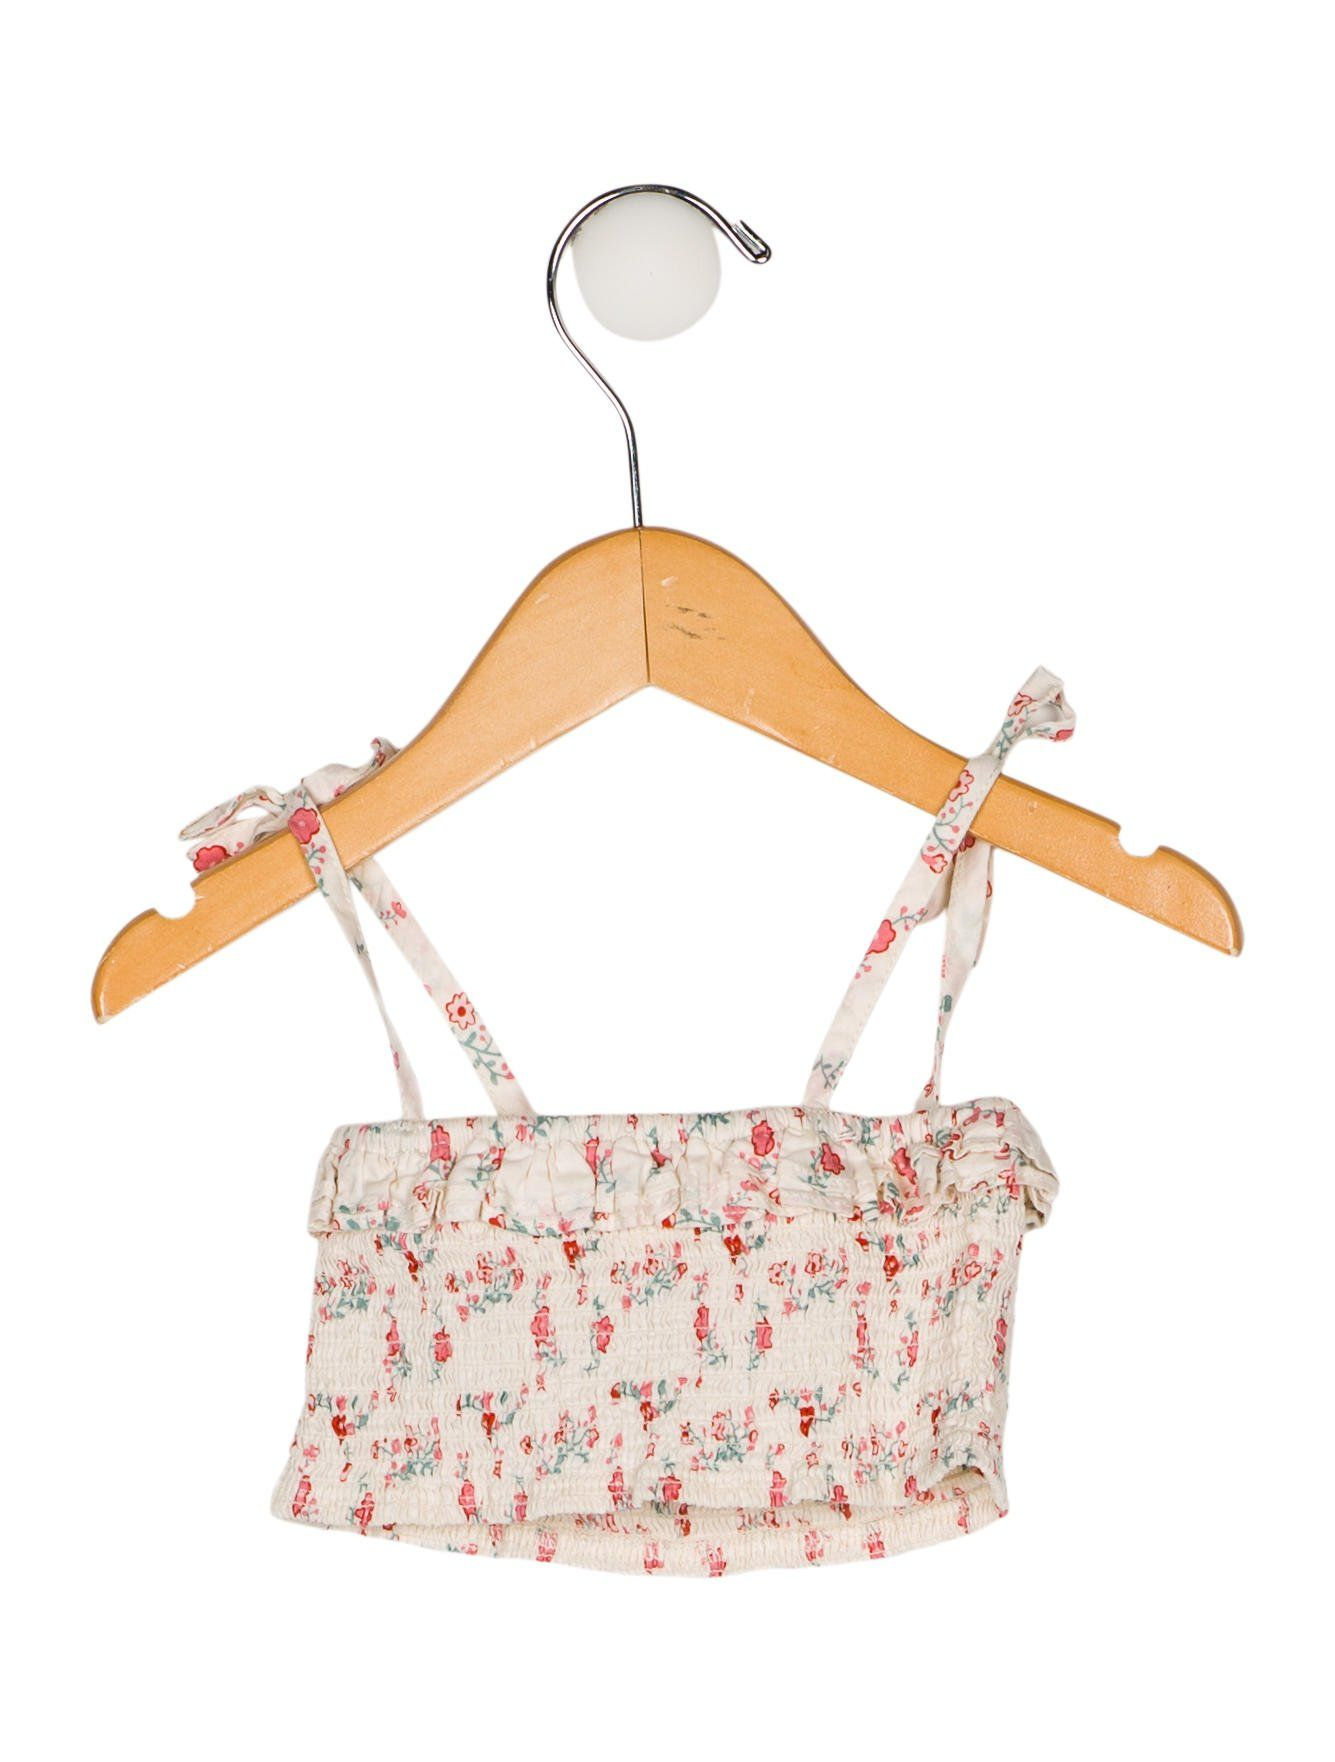 8a0da60716d Toddler girls' creme and pink Oeuf two-piece swimsuit set with floral print  throughout. Top features tie accents at straps and ruffle trim.